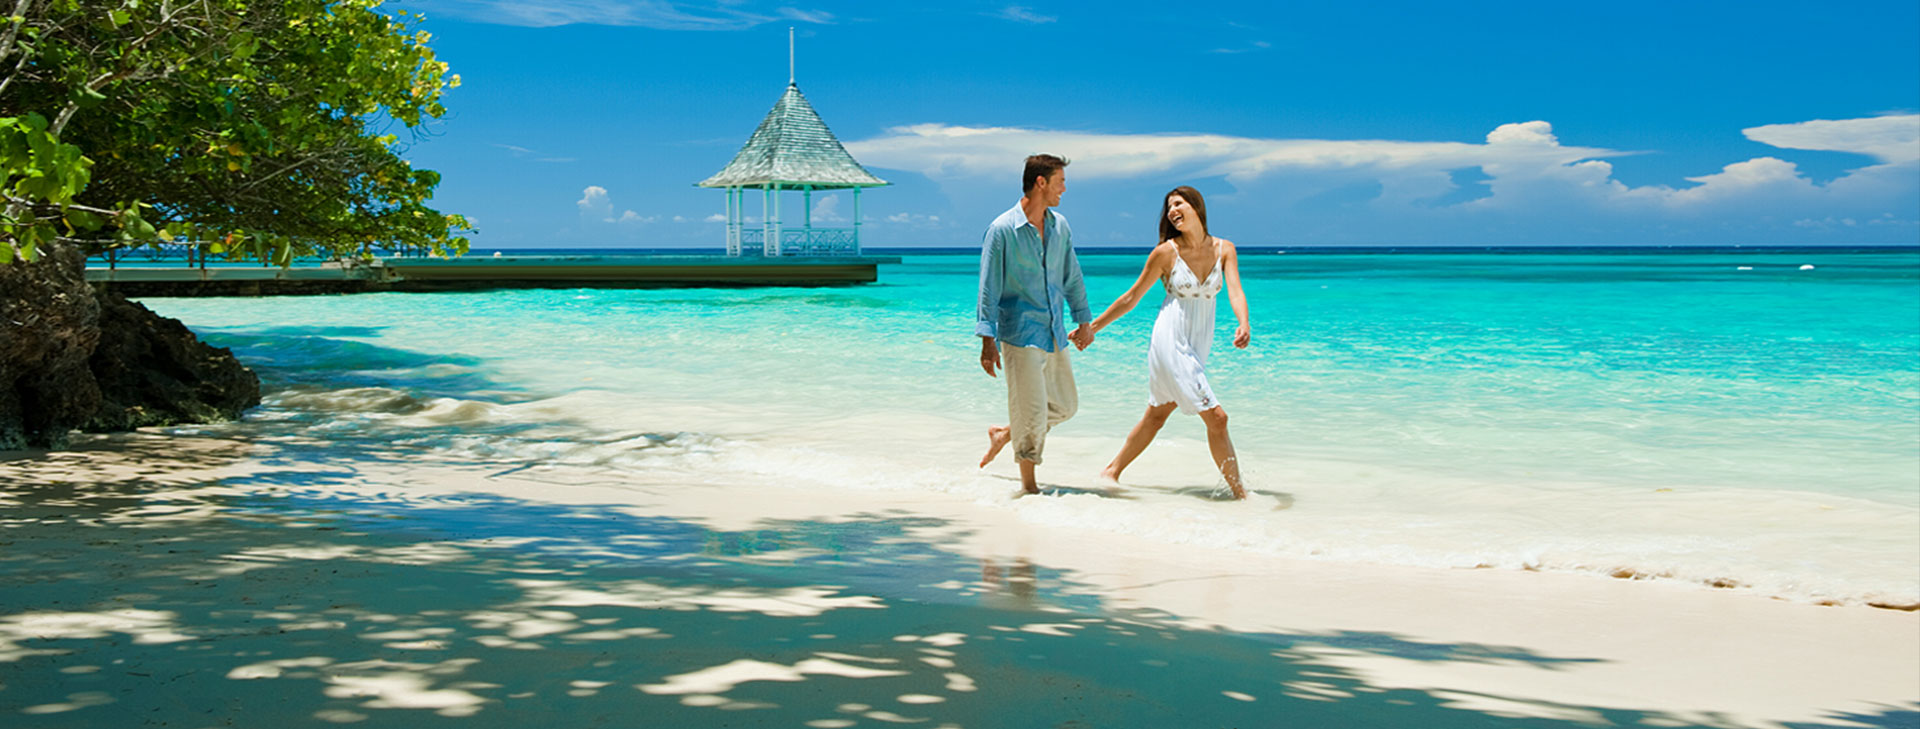 aa9f63cf116dc Win a Free 4-Day Vacation Sweepstakes at a Sandals Resort